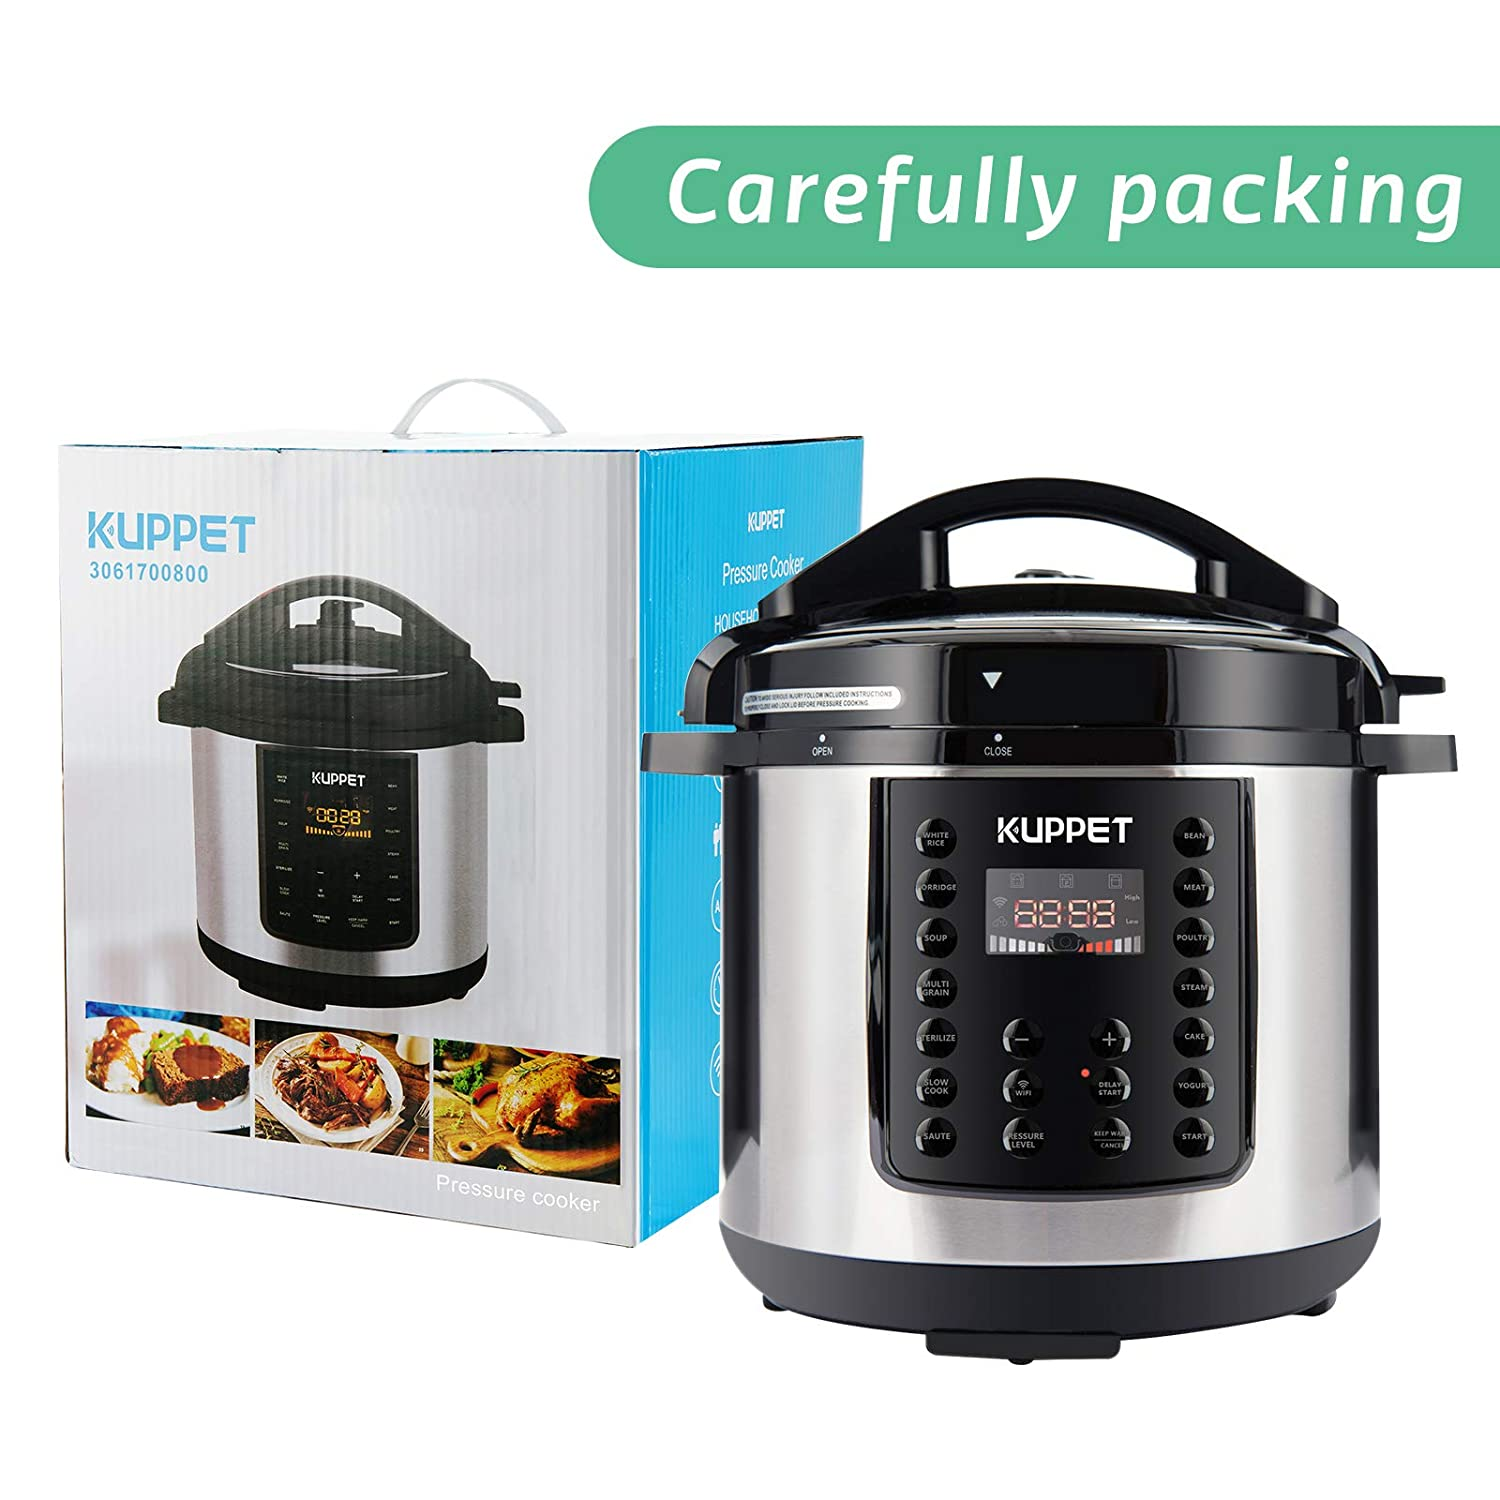 Stainless Steel 1000W Warmer Slow Cooker Rice Cooker Yogurt Maker Saute KUPPET 10-in-1 Electric Pressure cooker MultiPot Steamer 6 Qt Smart WiFi Multi use Programmable Multi Cooker with Recipe APP